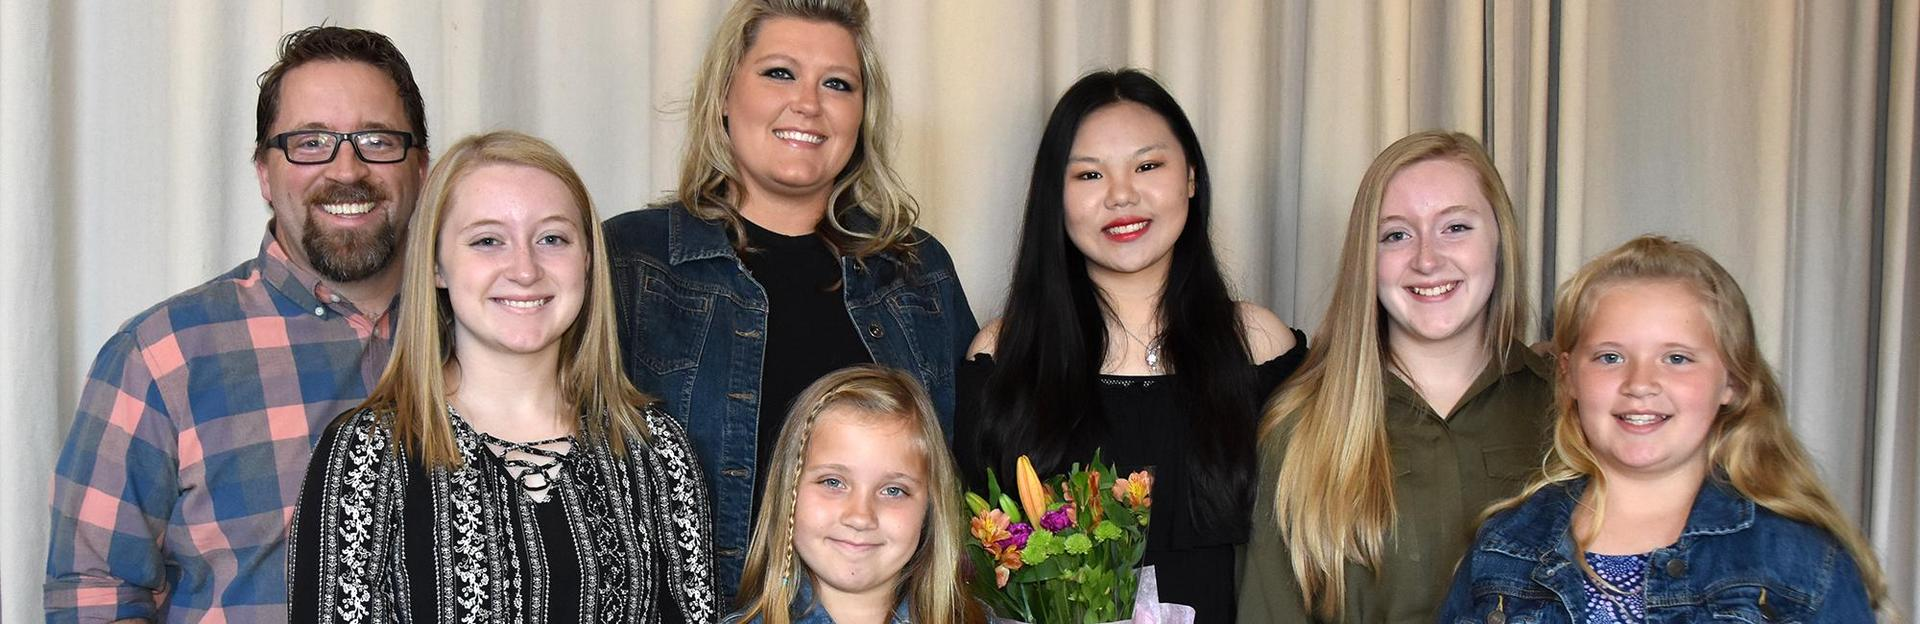 International student with her host family